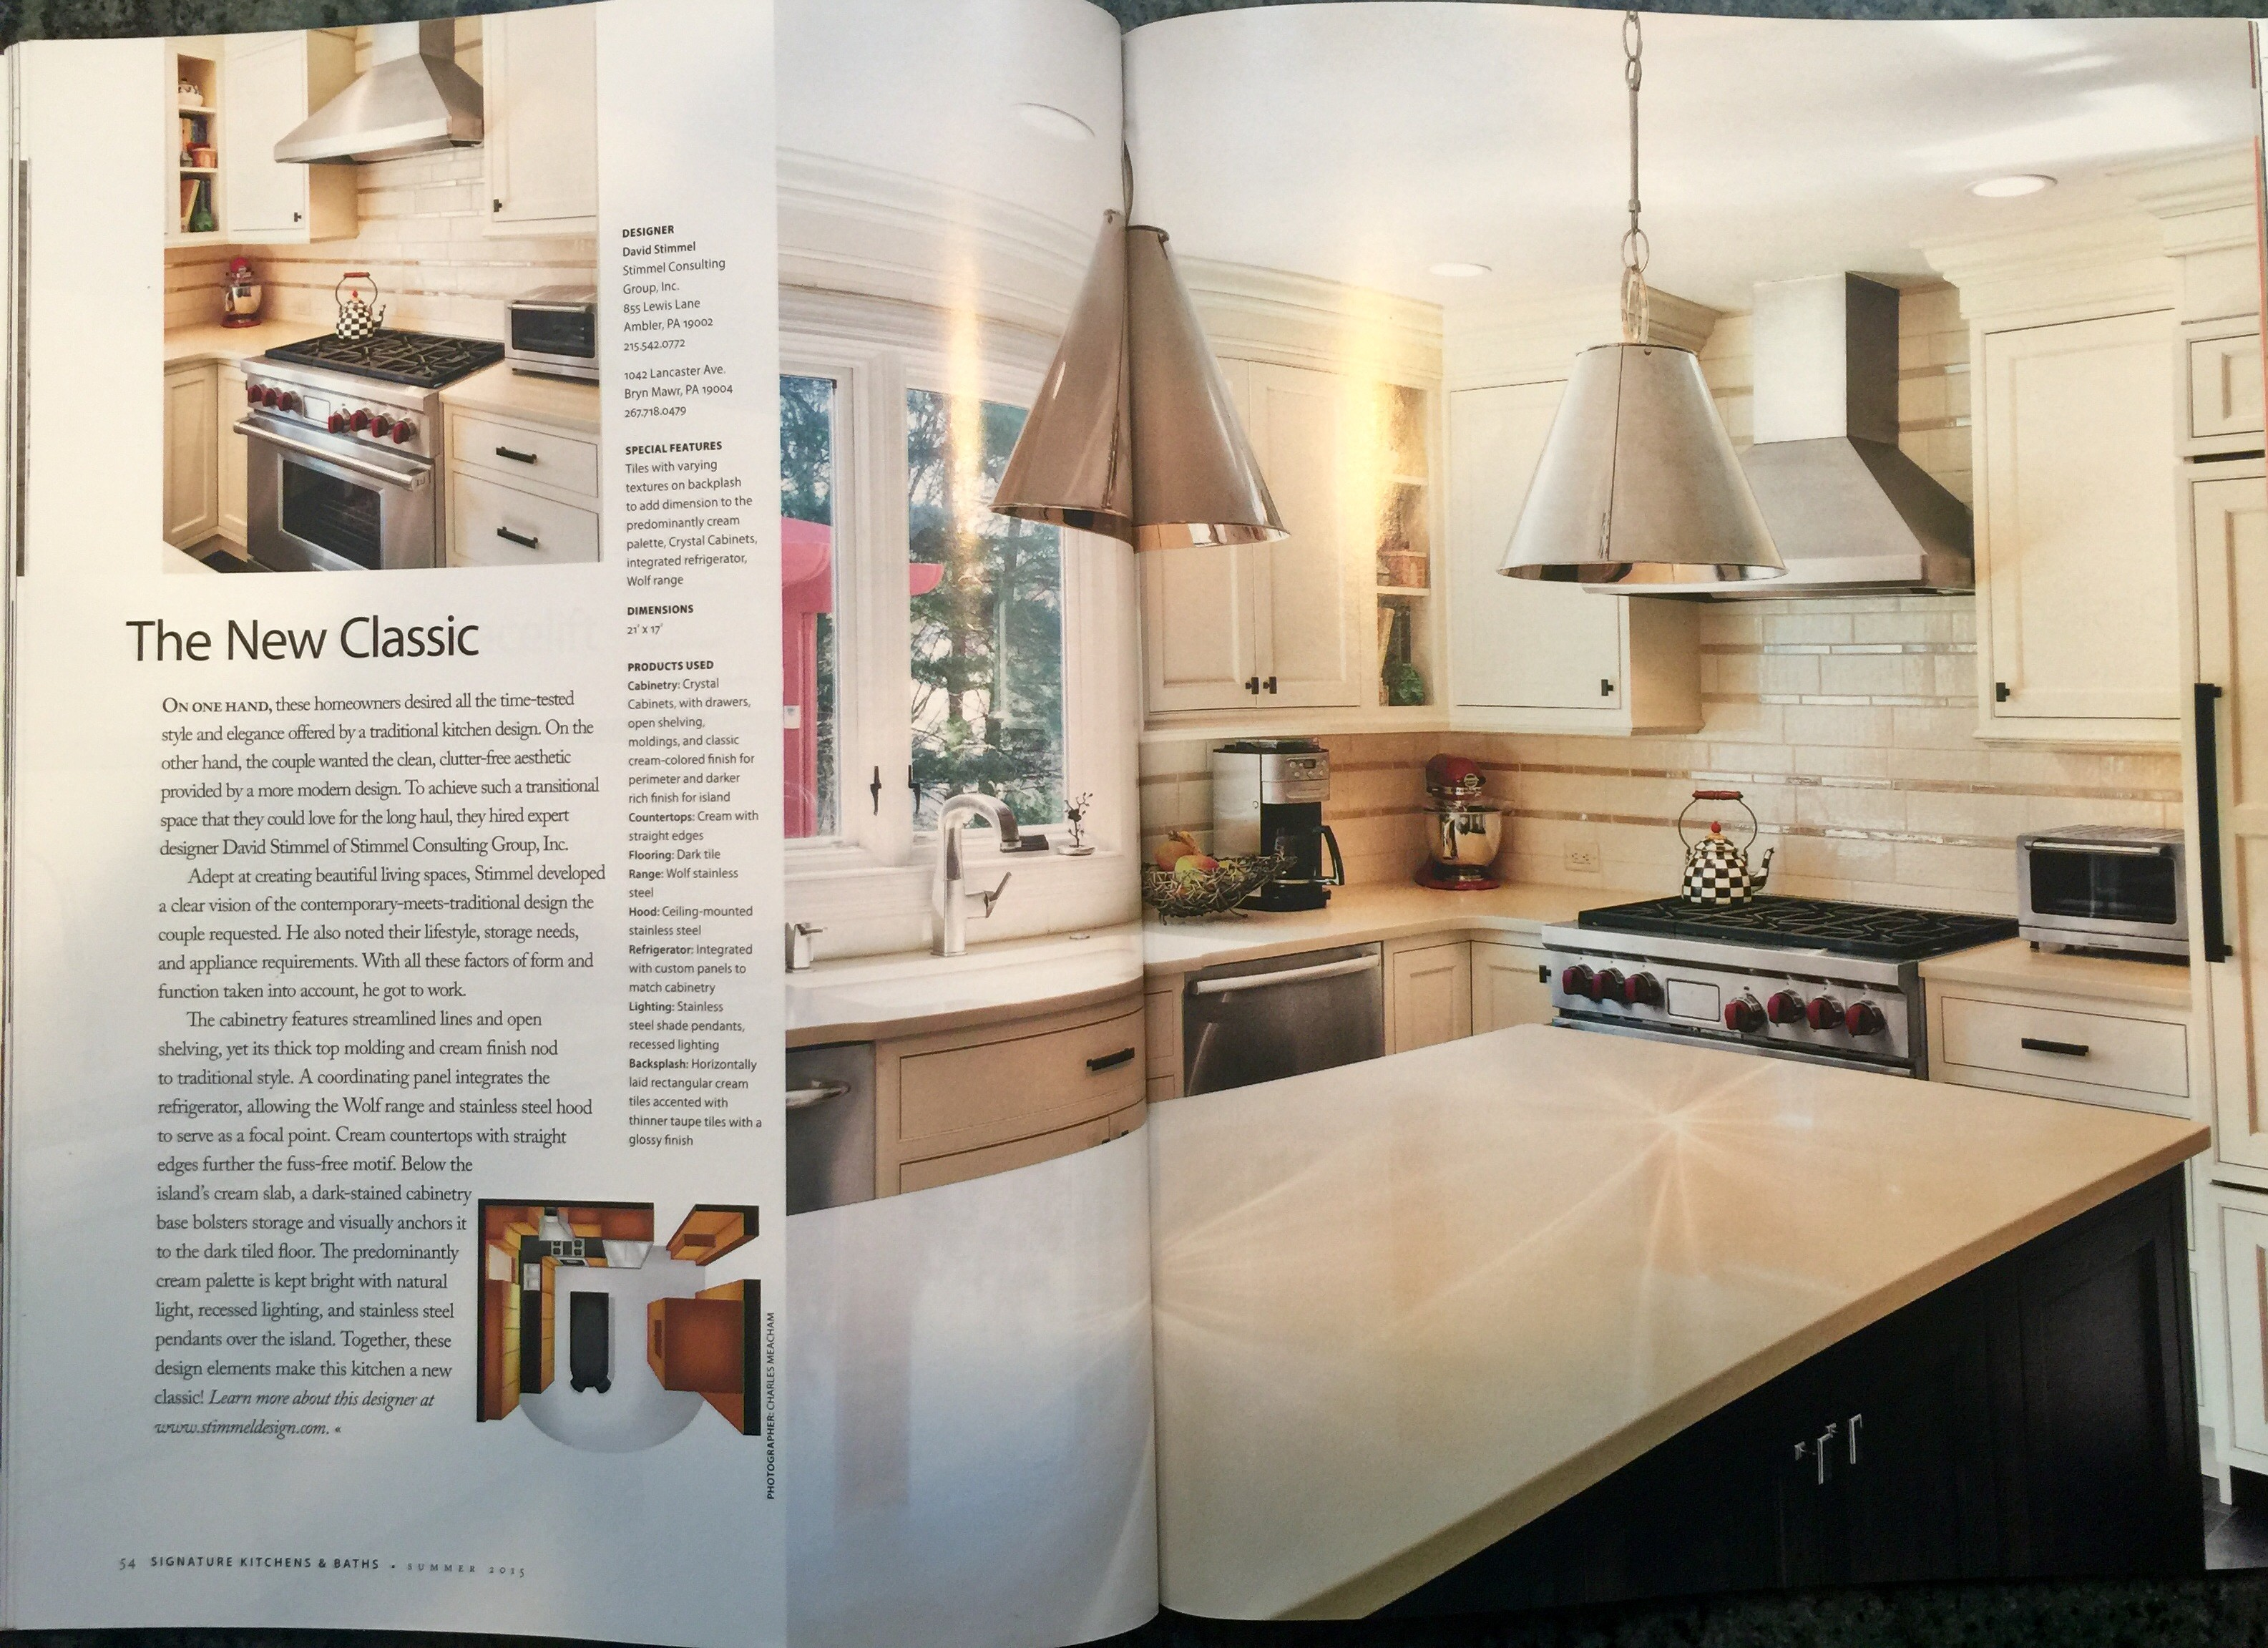 Custom Kitchen Renovation Published In Signature Kitchens Baths Magazine As The New Classic